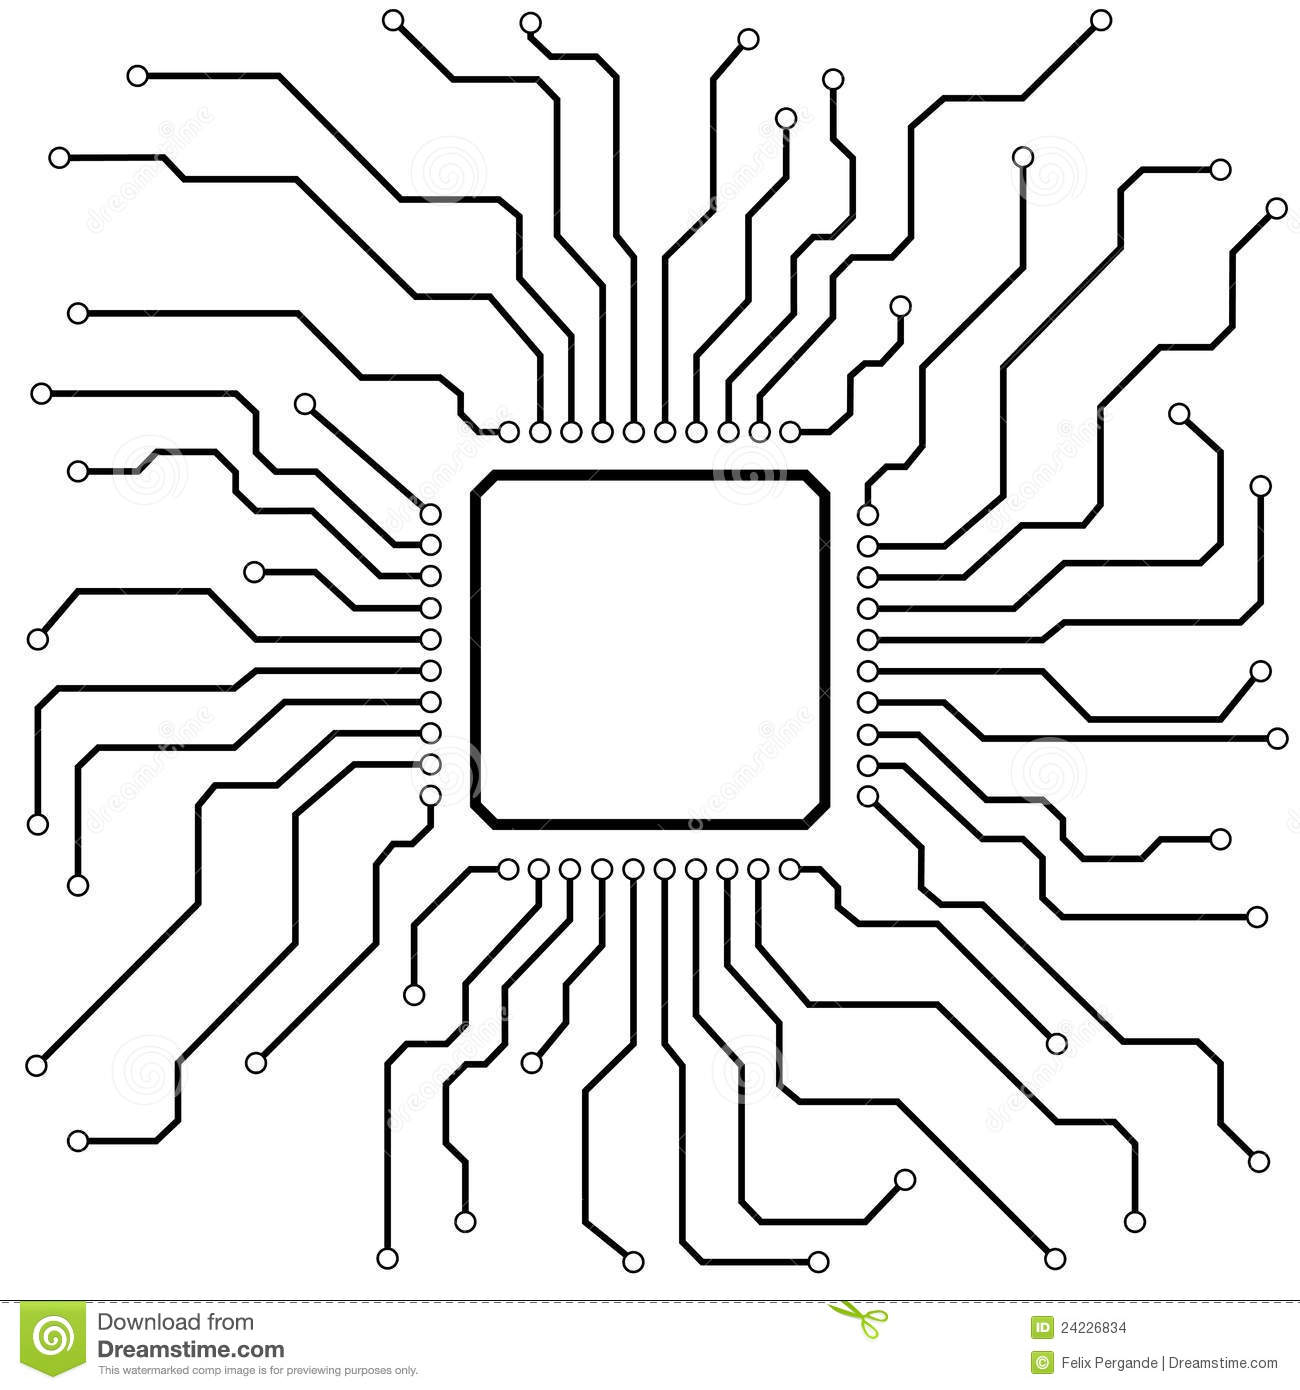 hi-tech circuit board stock images